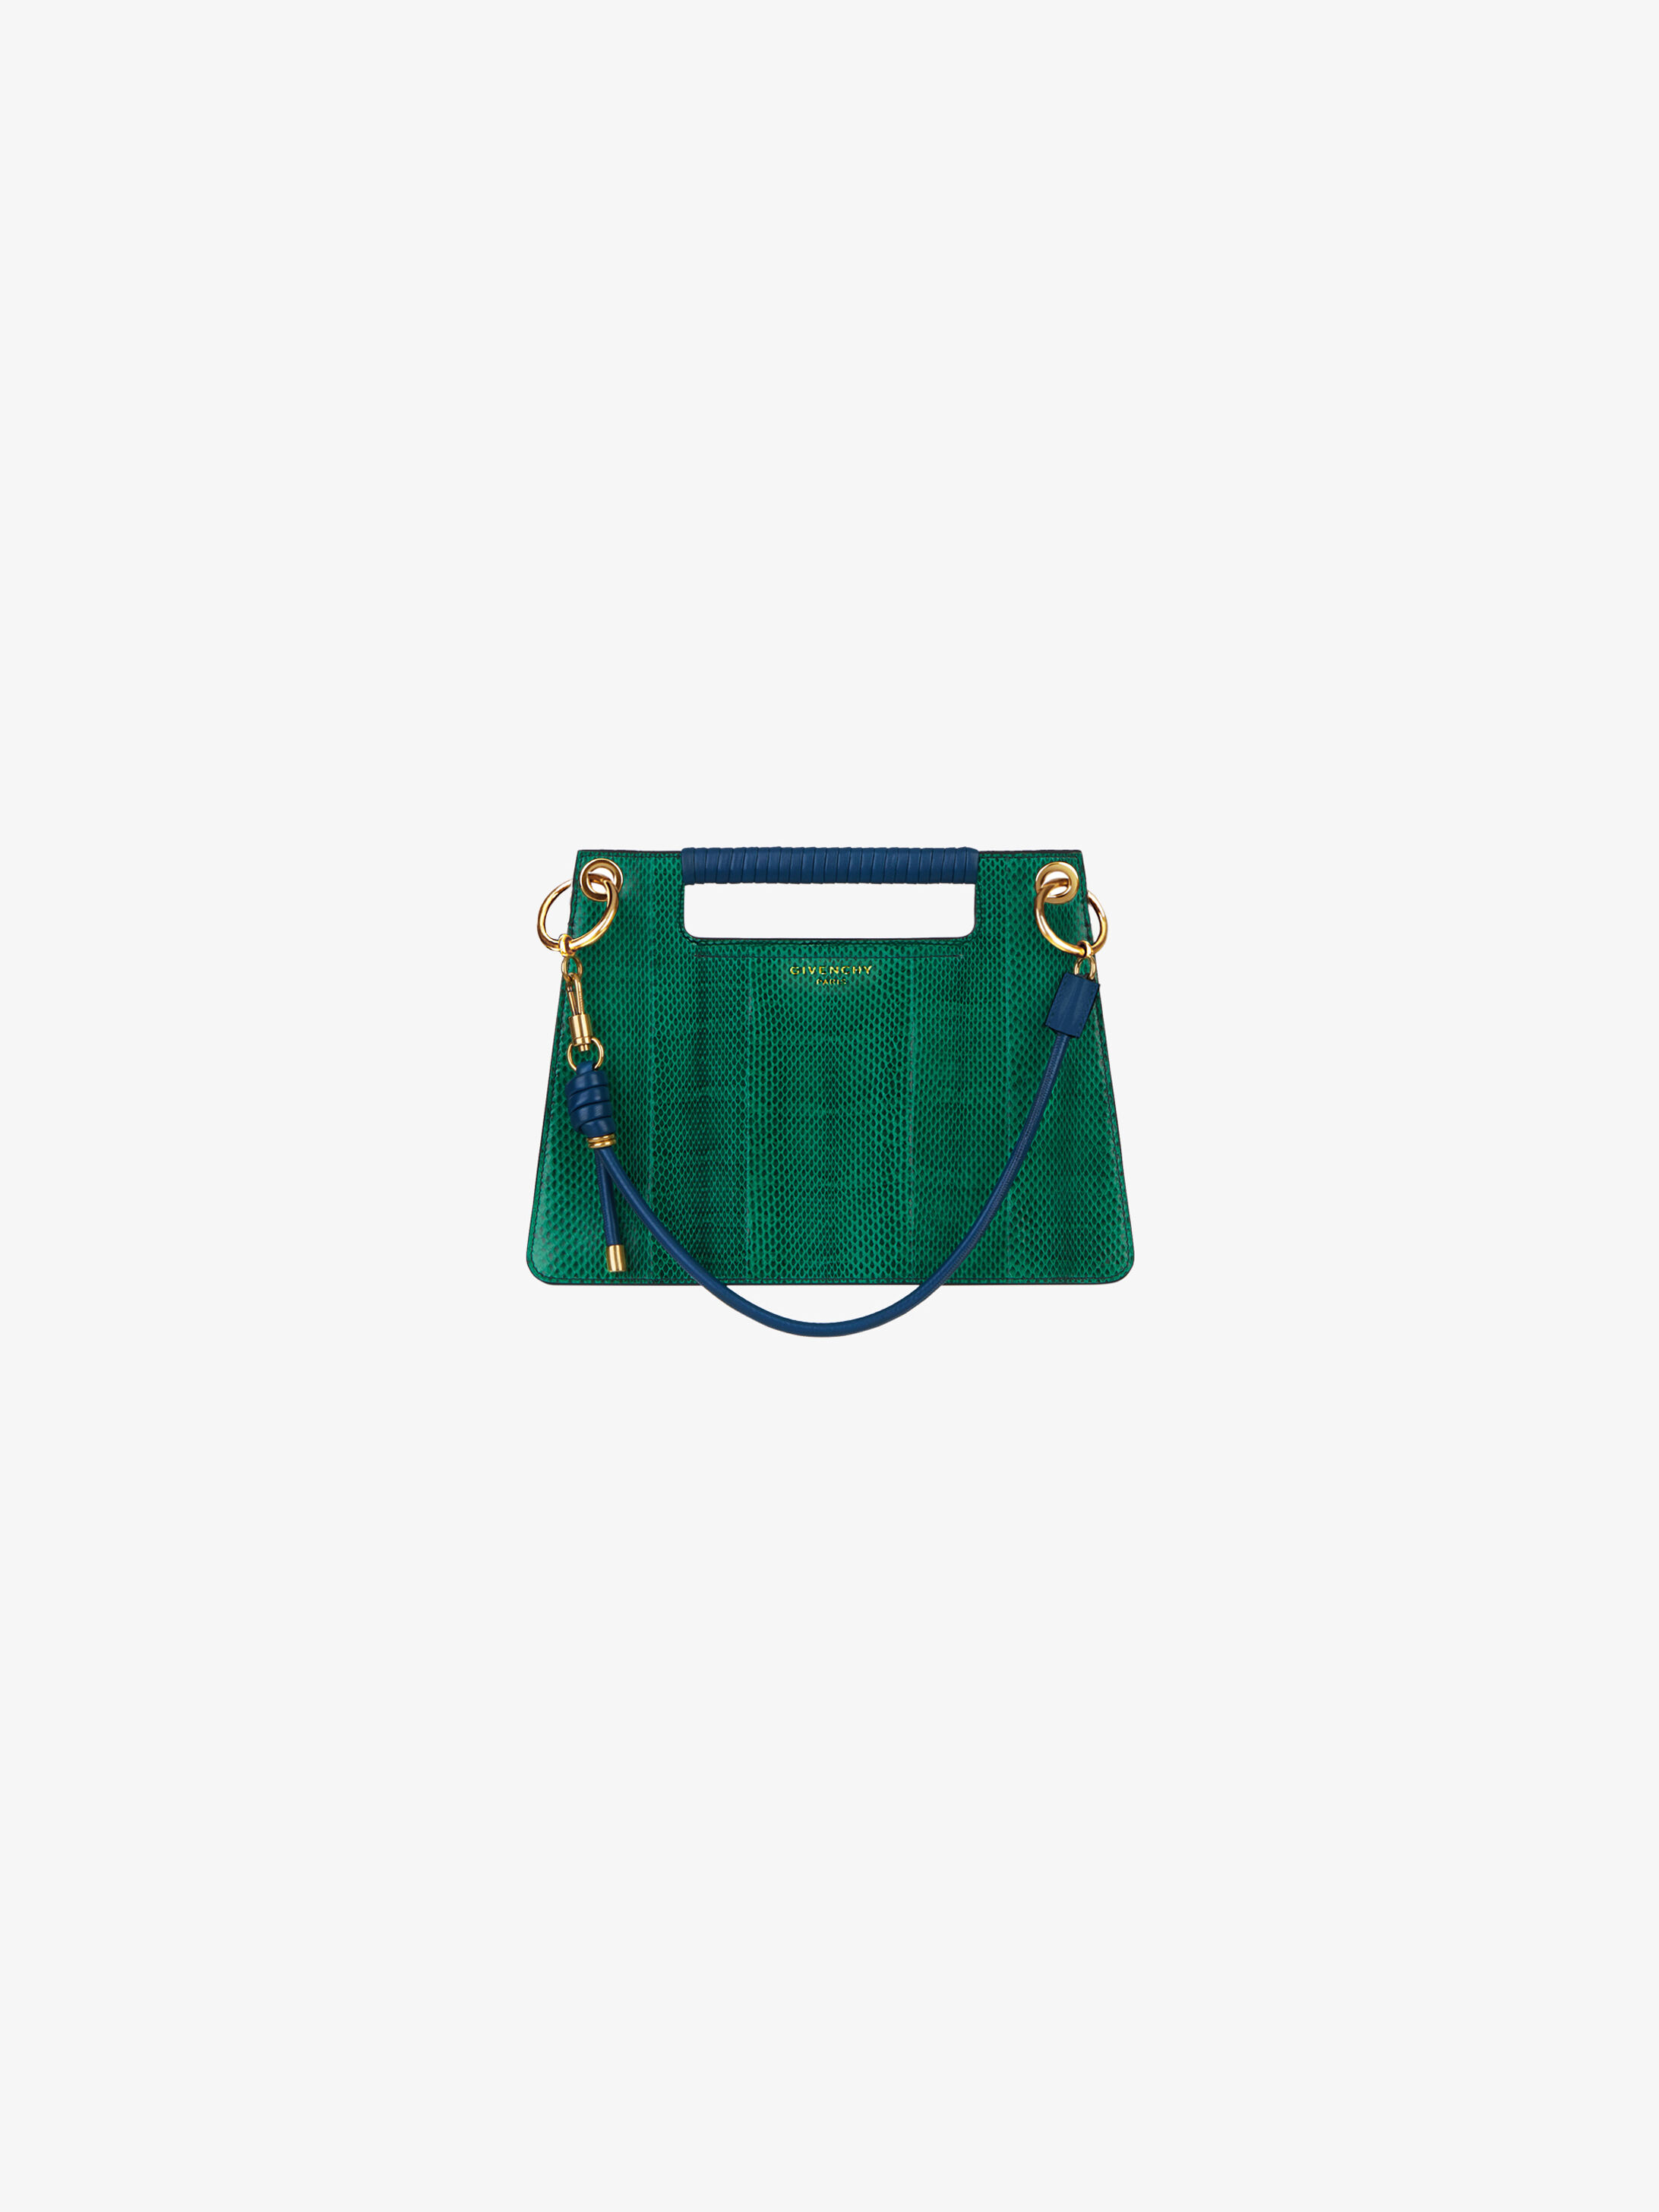 4e862b2066 Women s Handbags collection by Givenchy.